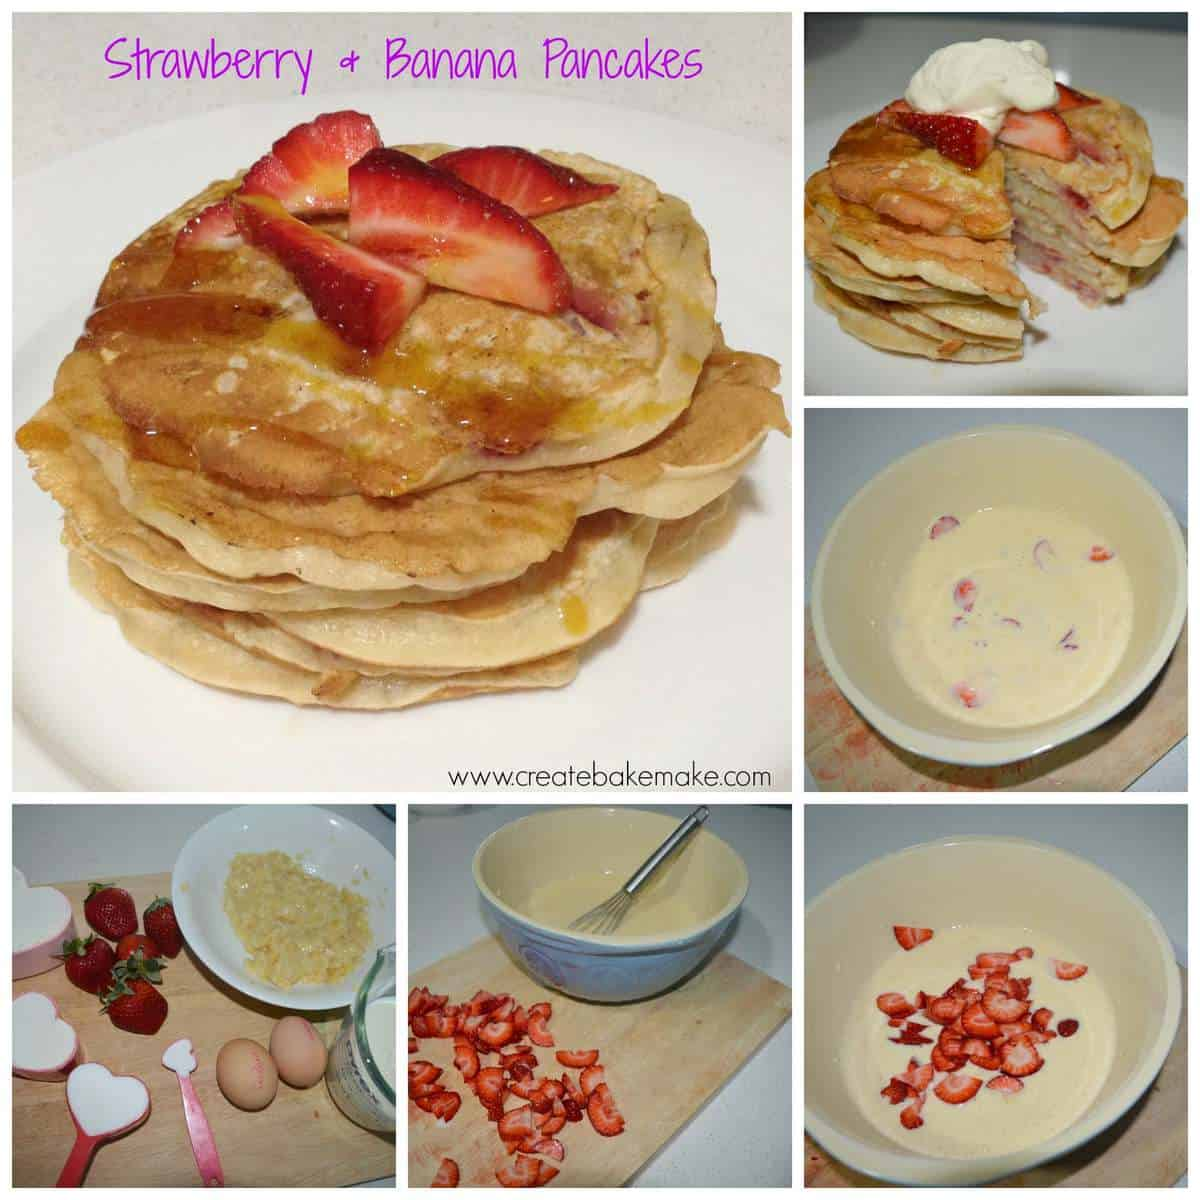 Strawberry and banana pancakes create bake make how to make strawberry and banana pancakes ccuart Gallery